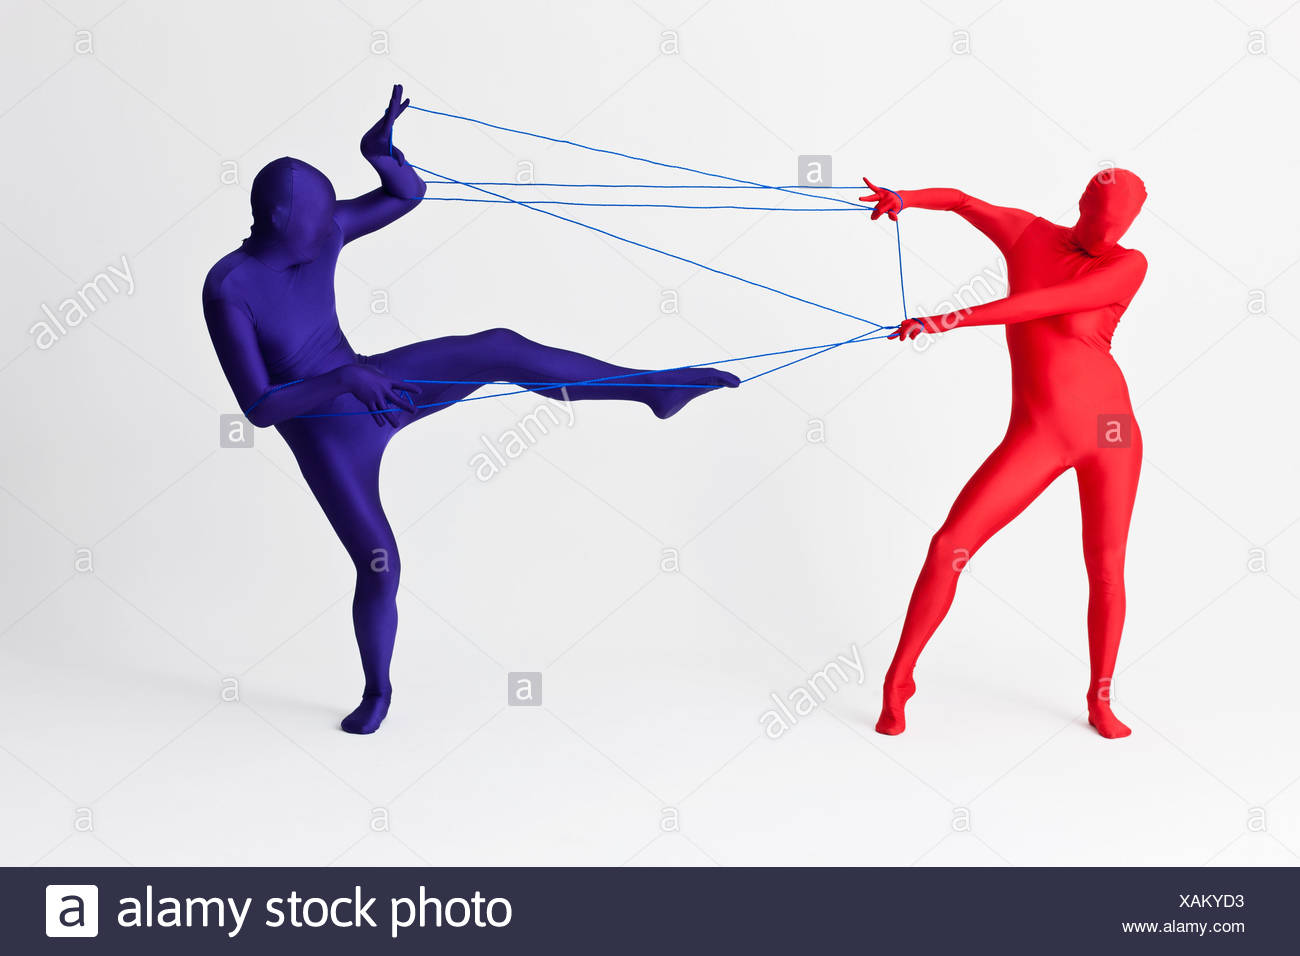 Couple in bodysuits playing with string - Stock Image